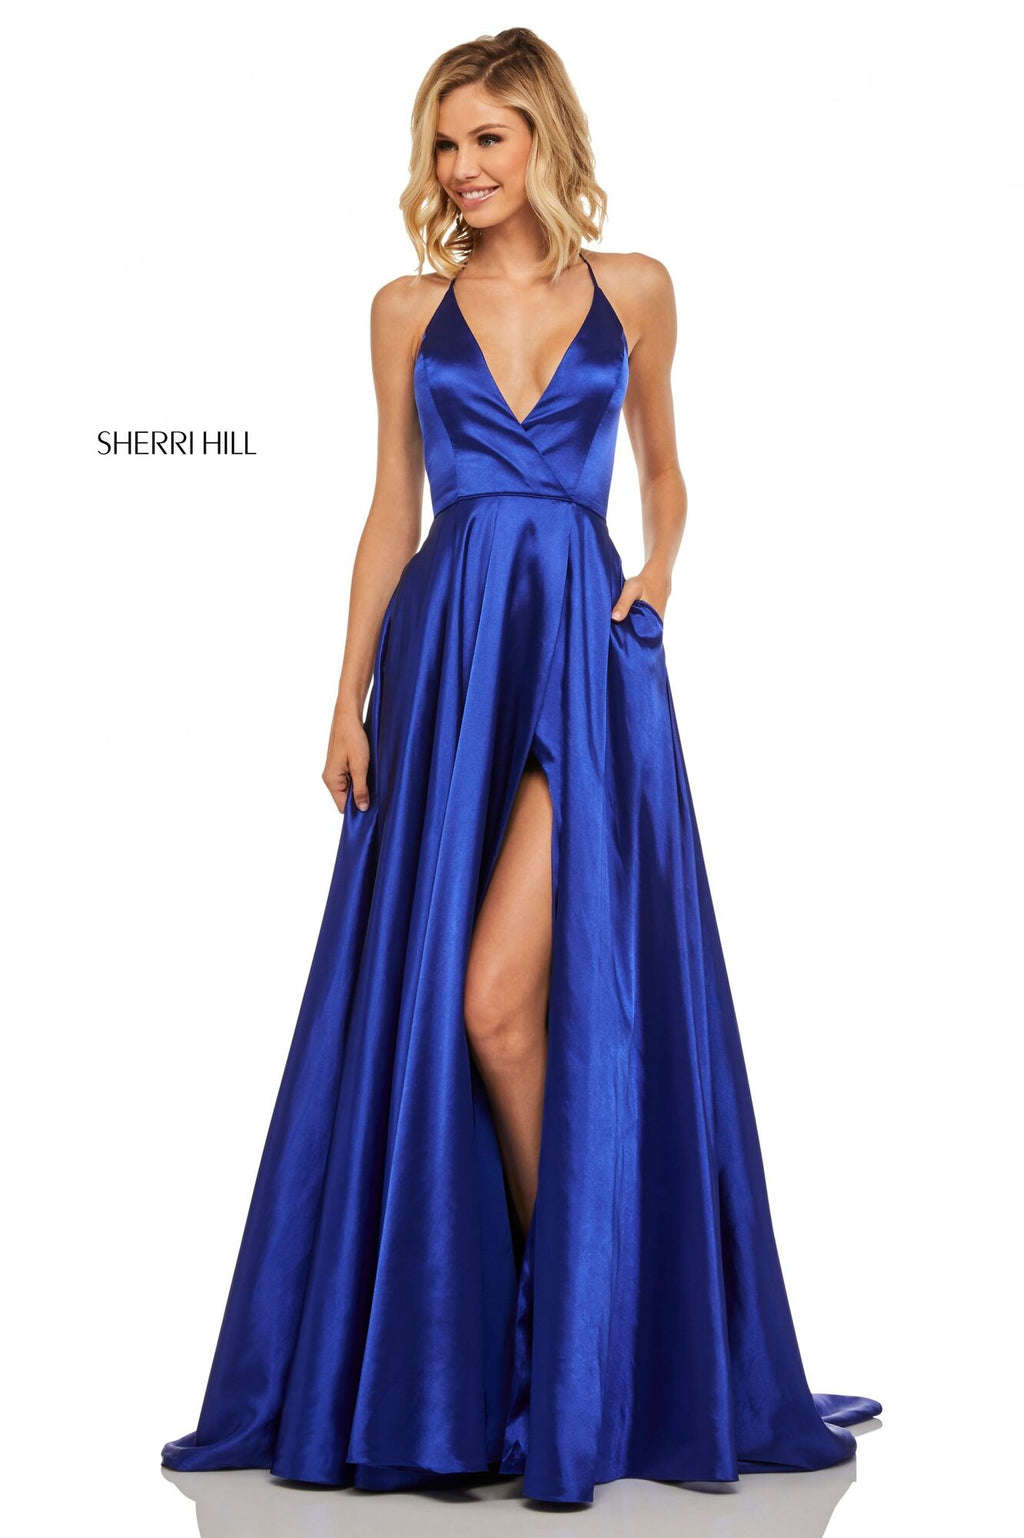 SHERRI HILL PROM DRESS #52921